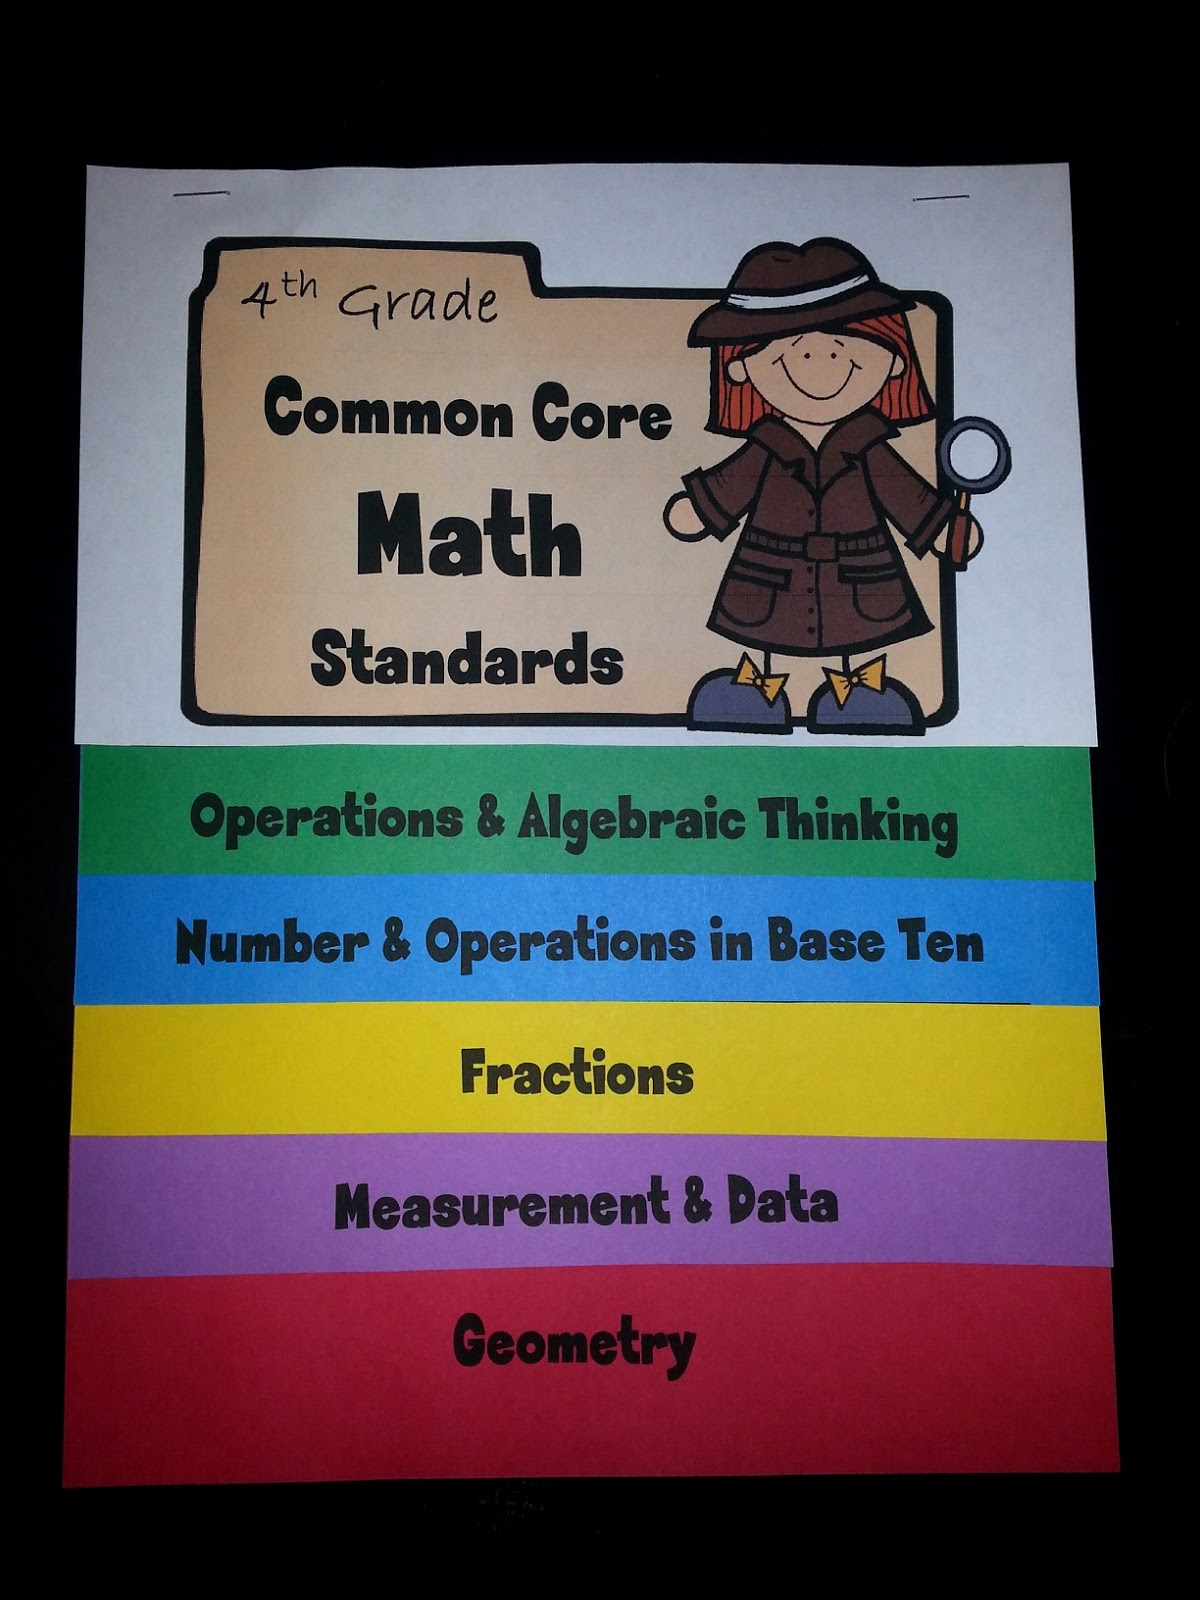 Common Core Standards Math 4th Grade Measurement